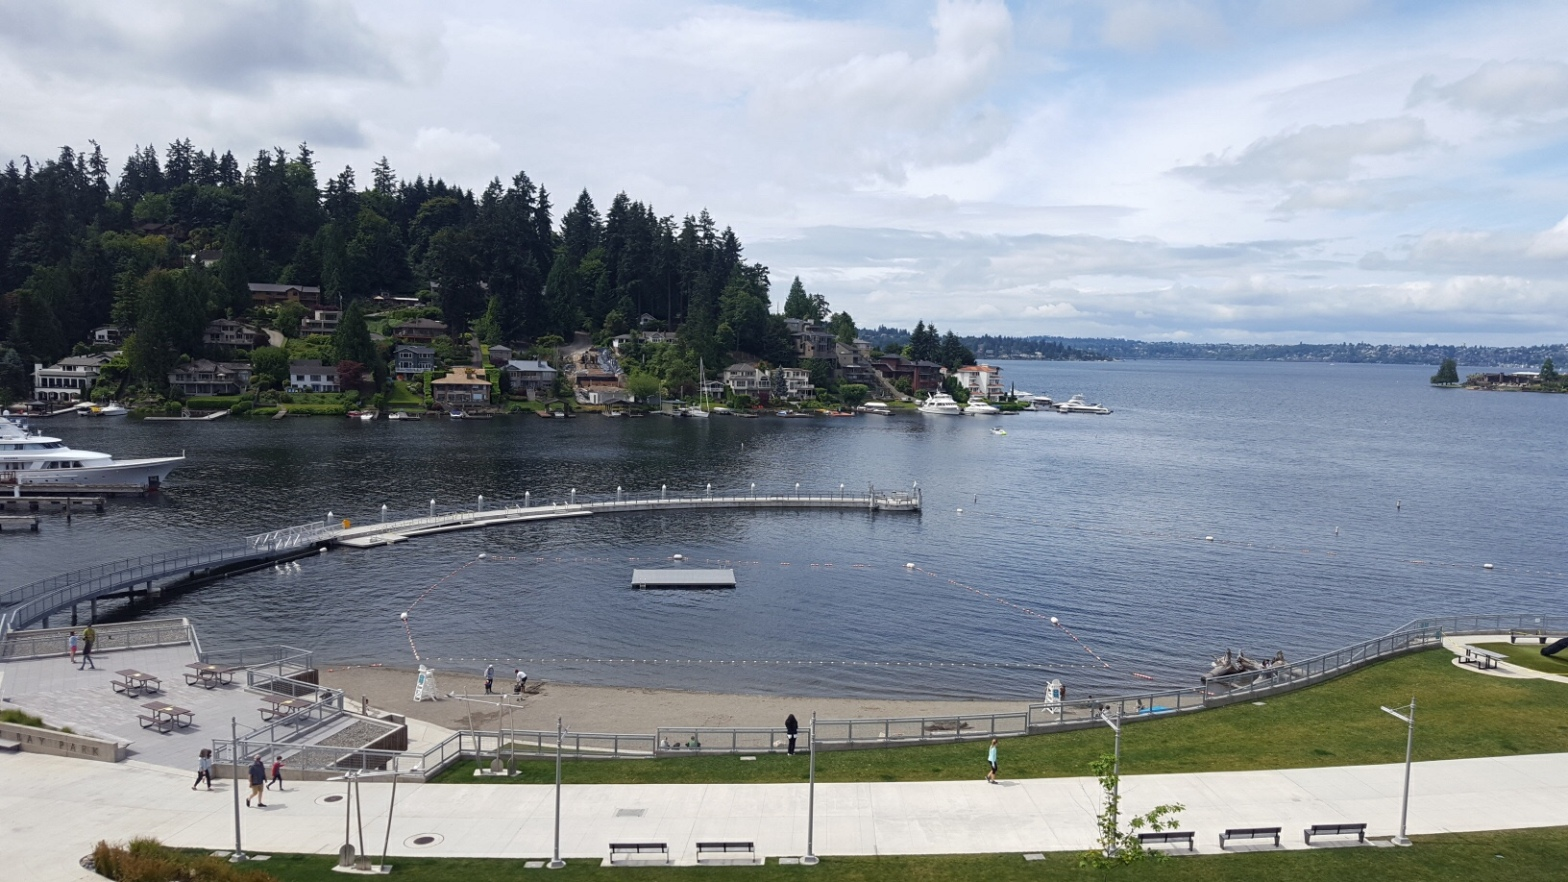 Meydenbauer Bay Park sand and swim beach in Bellevue, WA